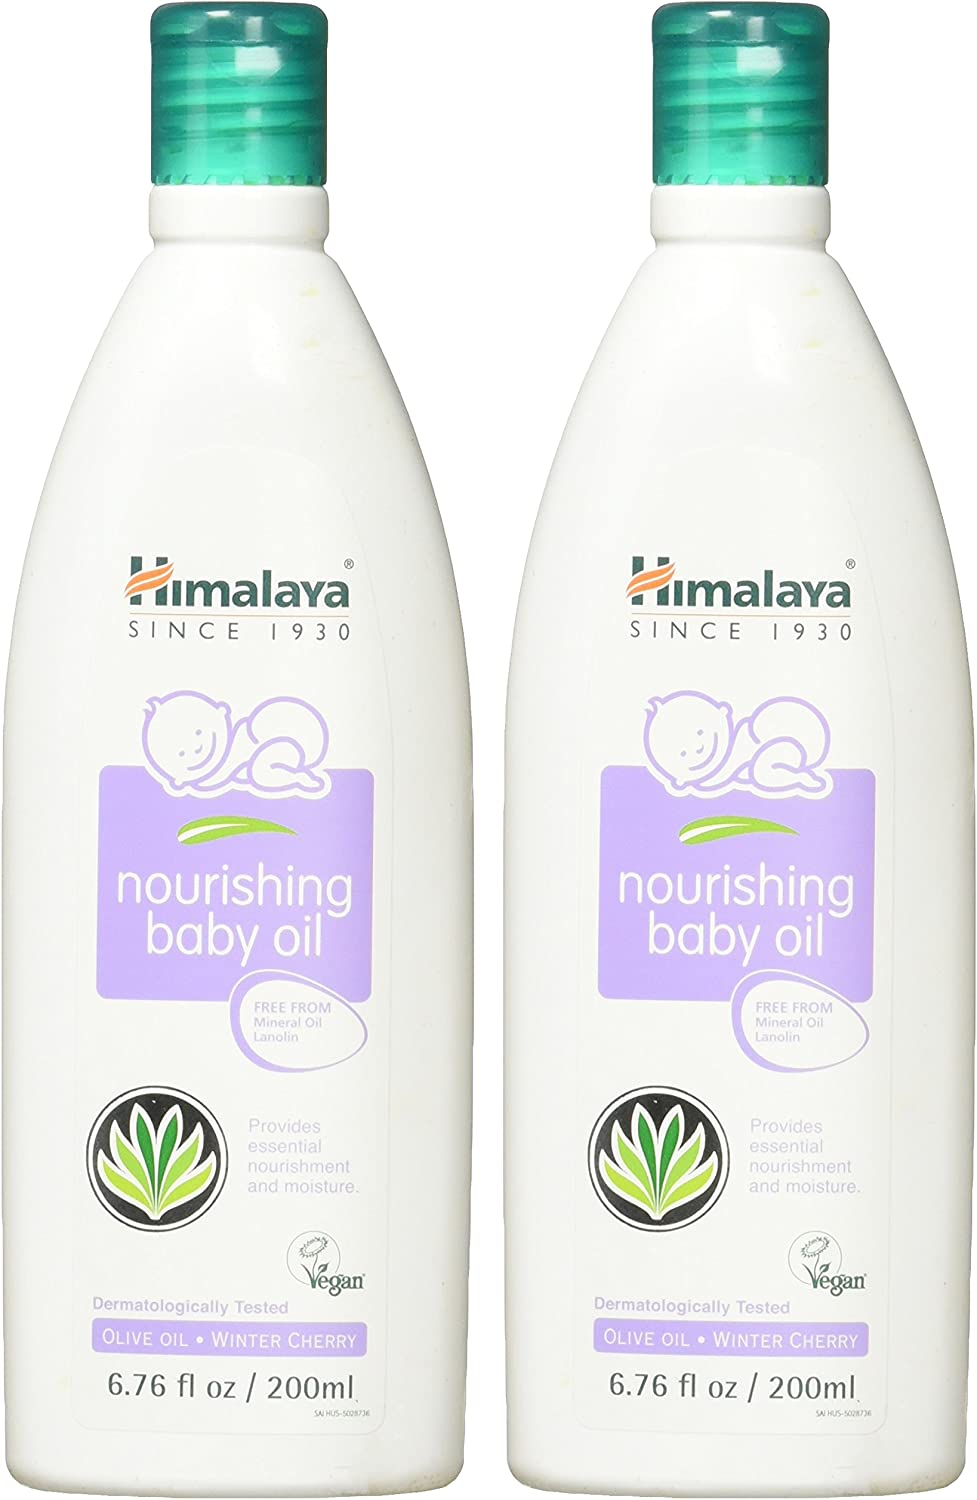 Can you put baby oil on your hair? Himalaya Baby Oil is the answer